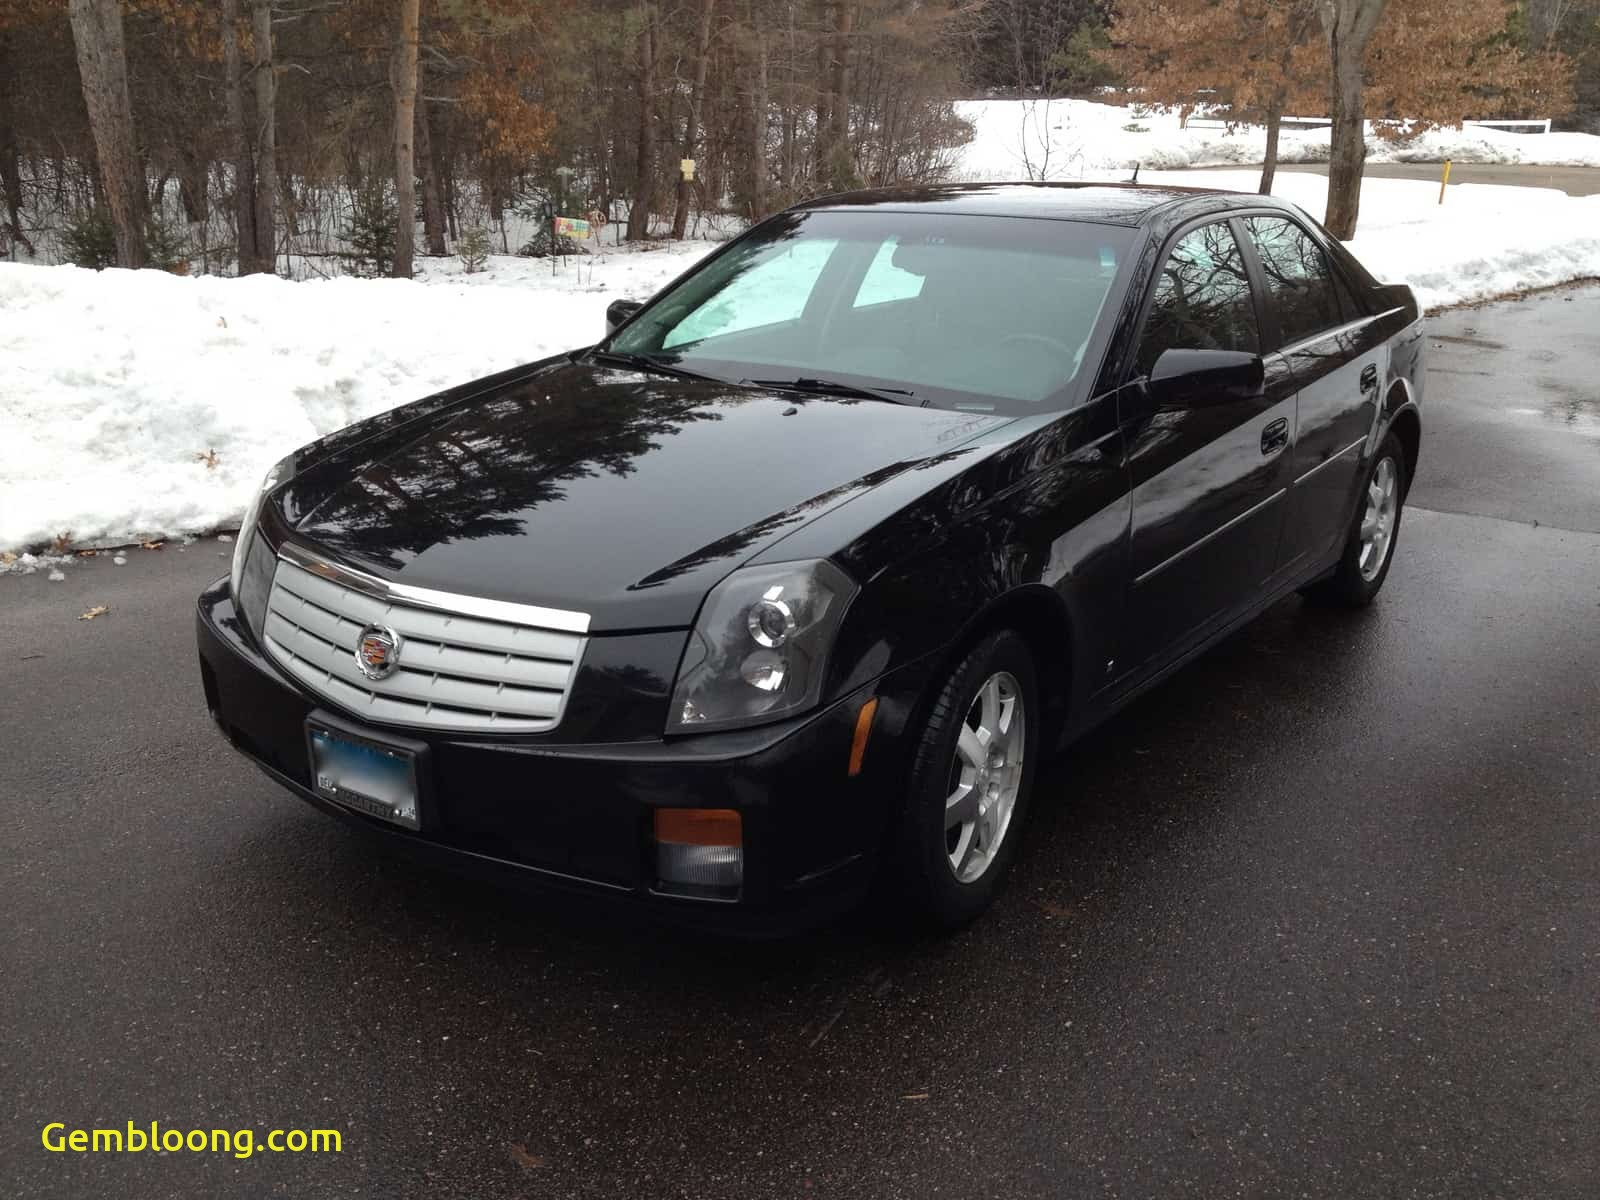 Cars for Sale 5000 Awesome 25 Fun and Practical Cars Under $5000